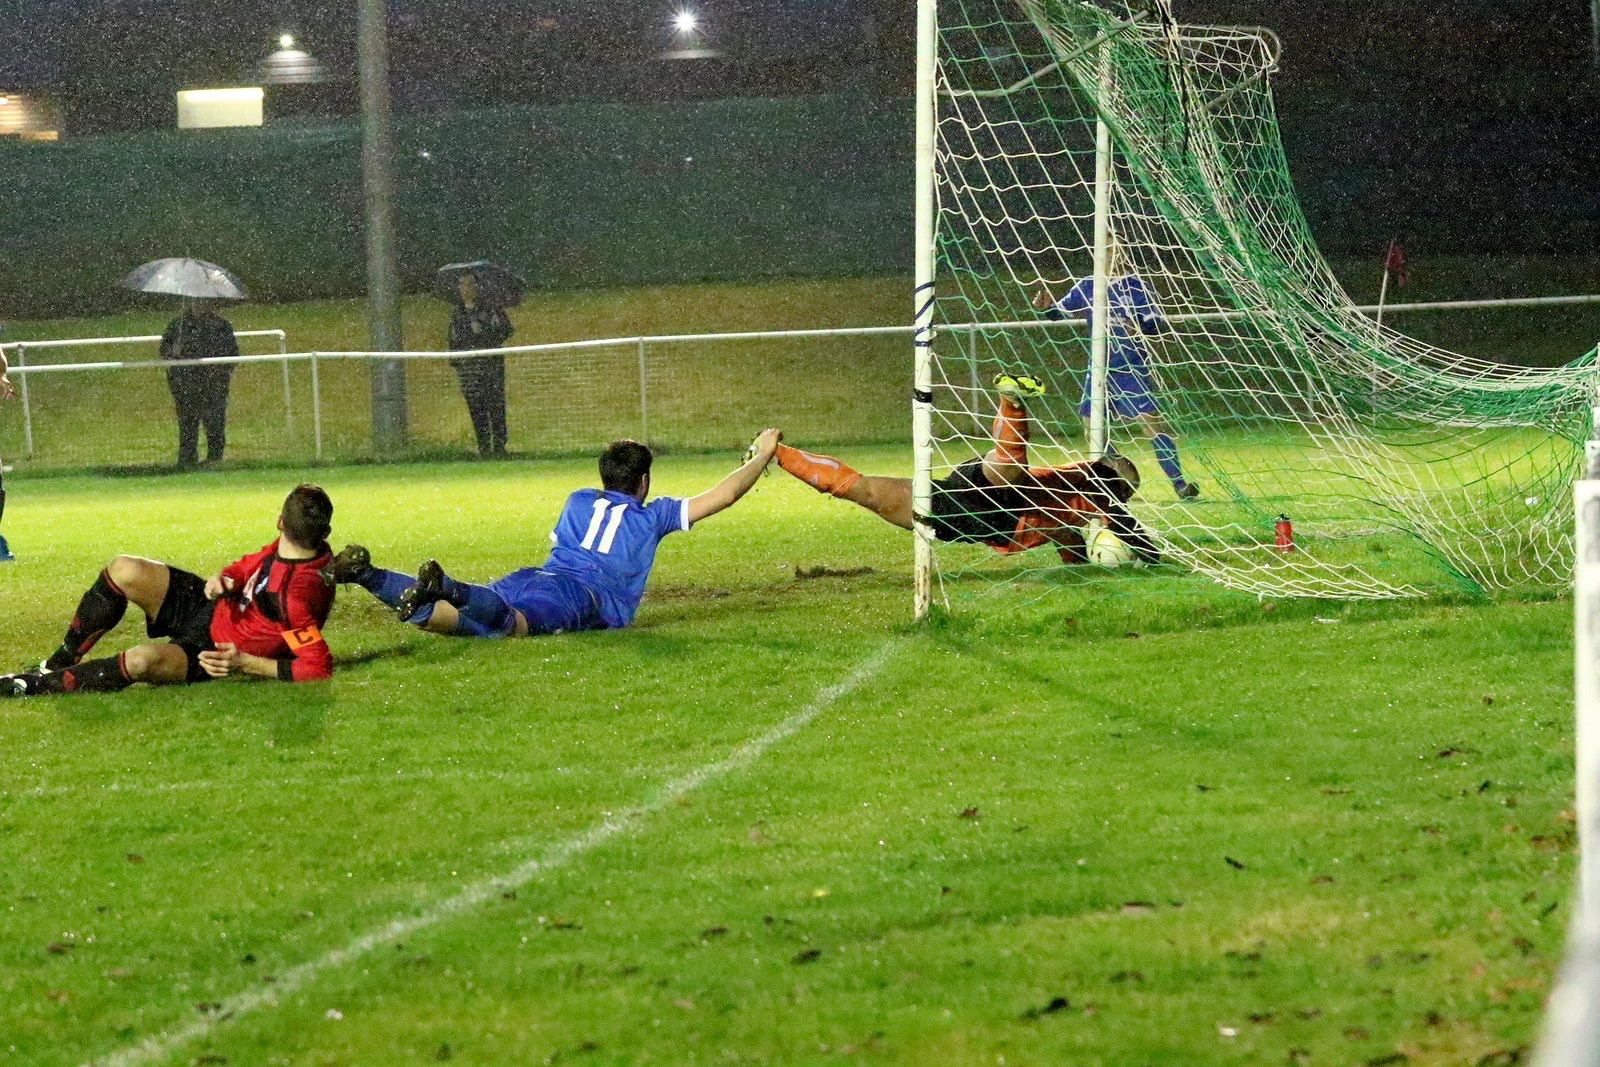 Ian Hurst sees his shot go over the line as the Edgware keeper desperately tries to save